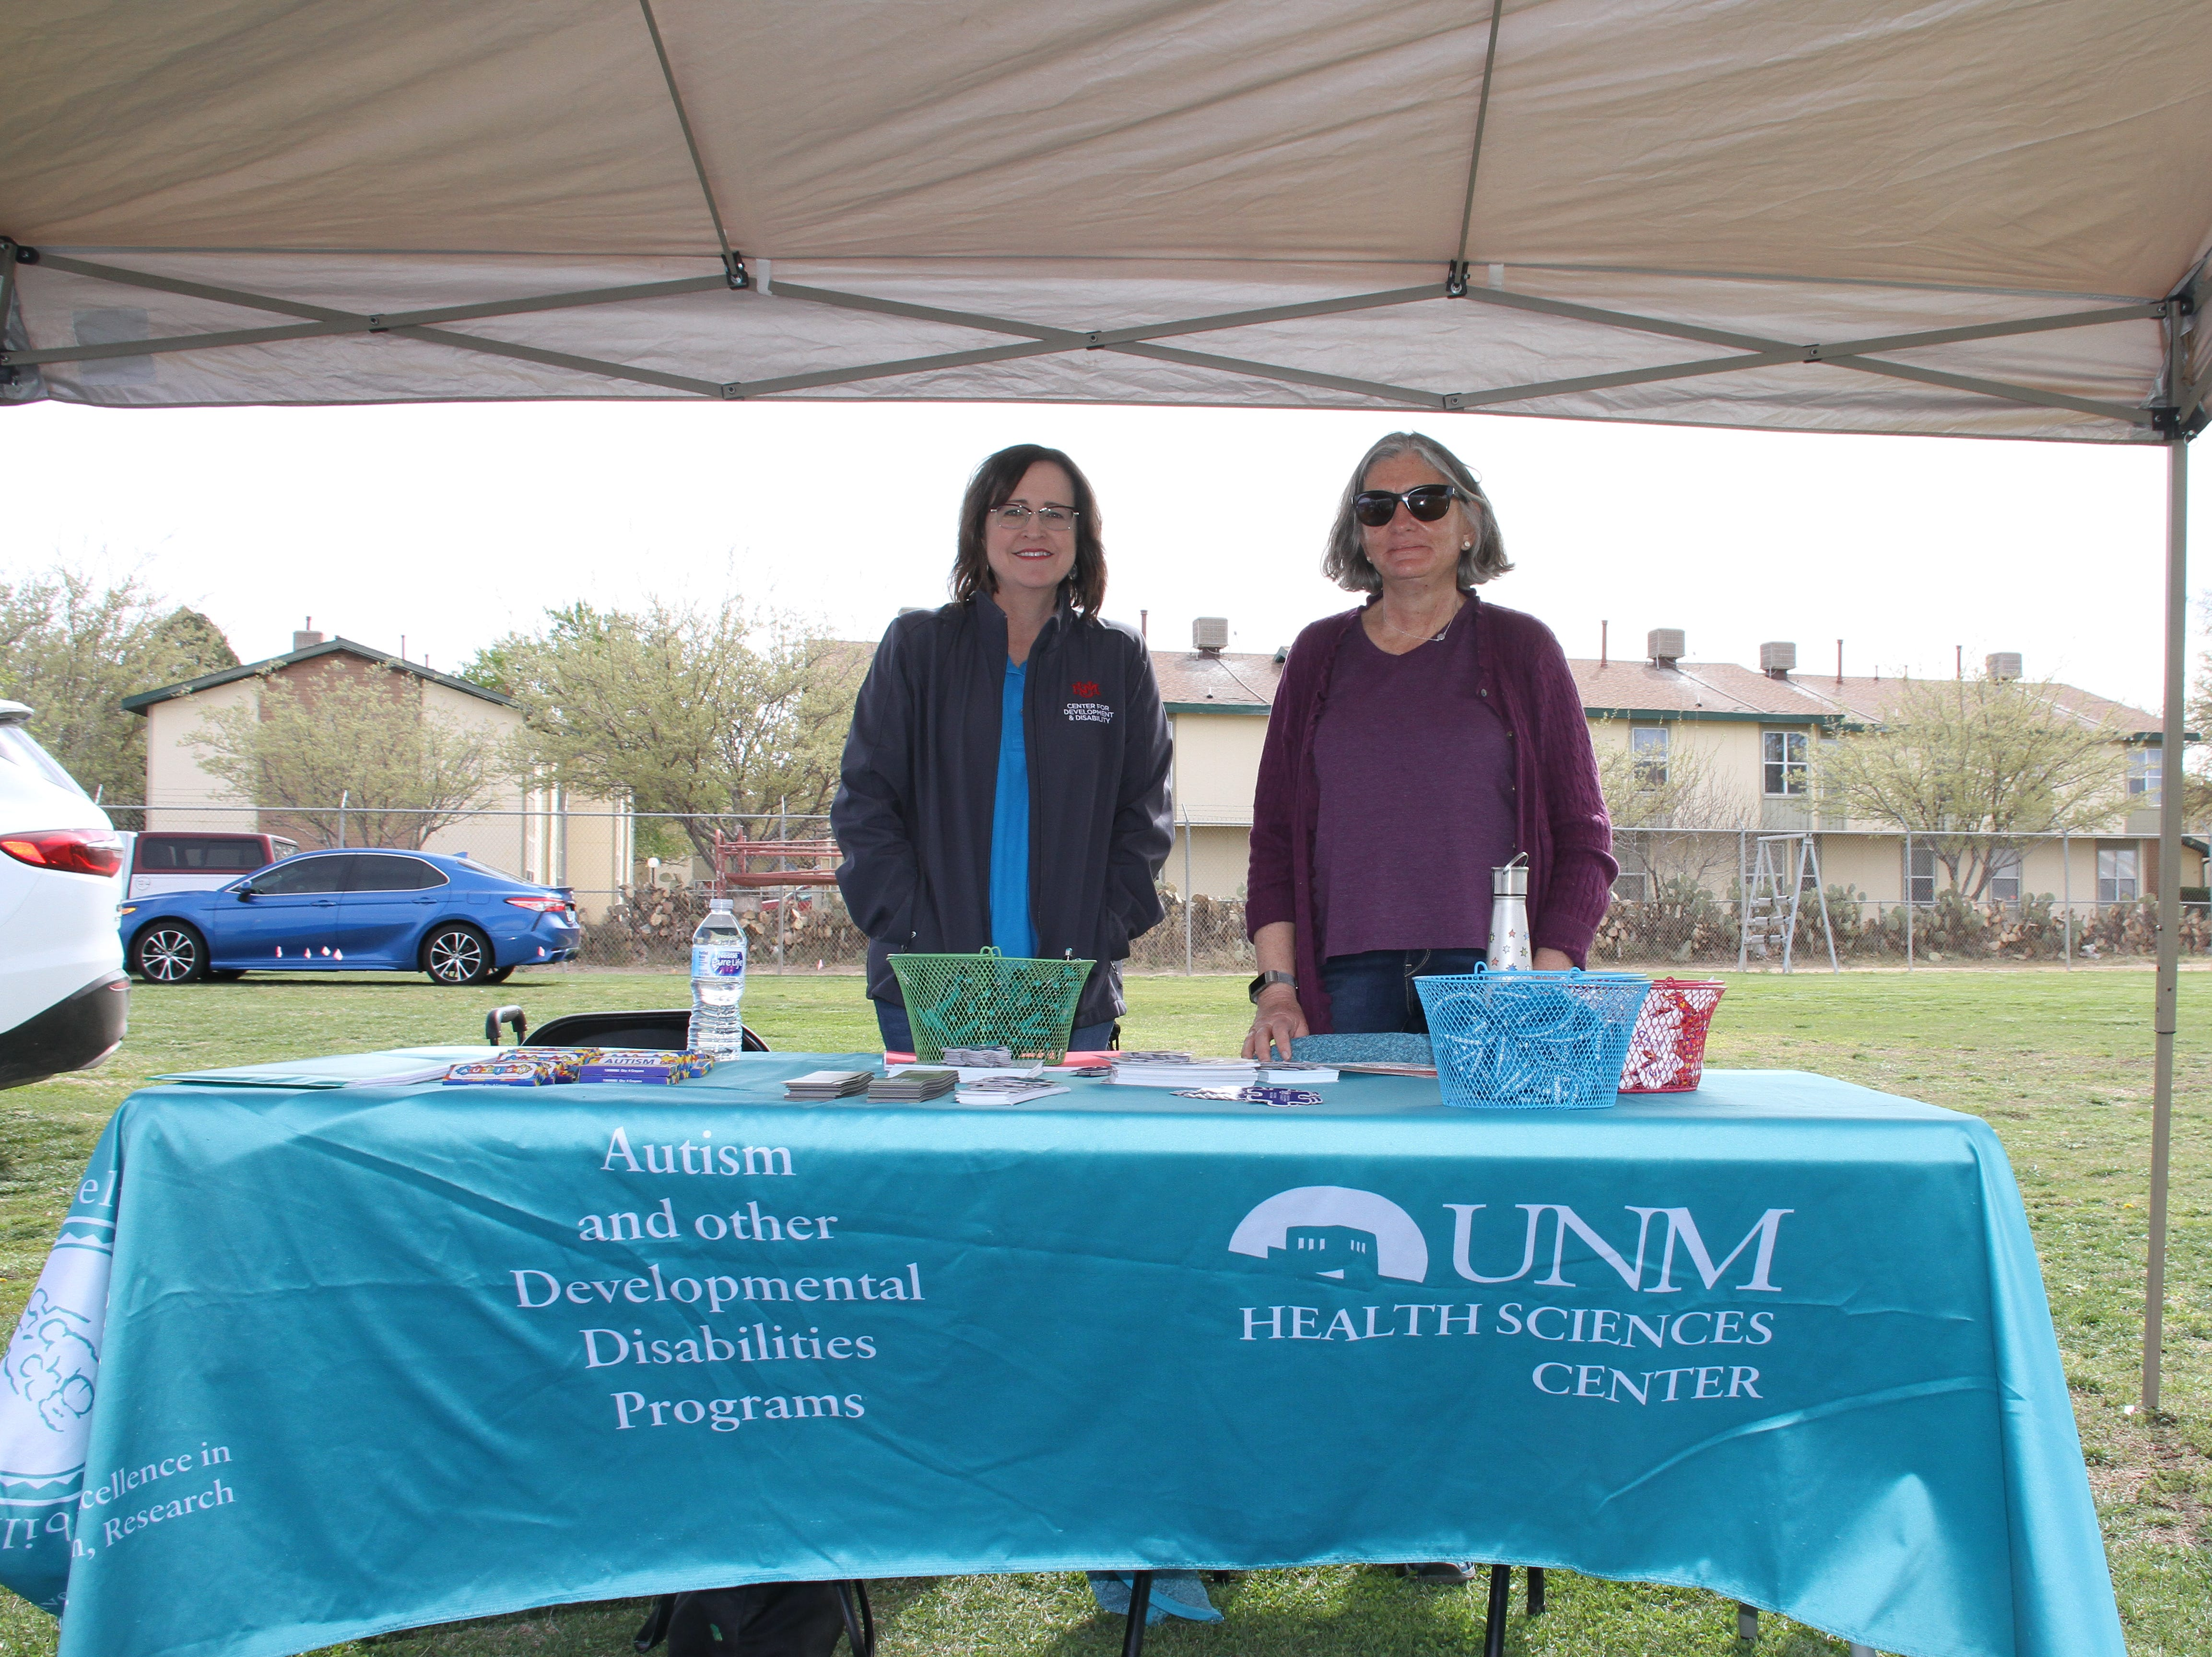 From left, Lauriann King and Gay Finlayson from the University of New Mexico's Center for Development and Disablility department.